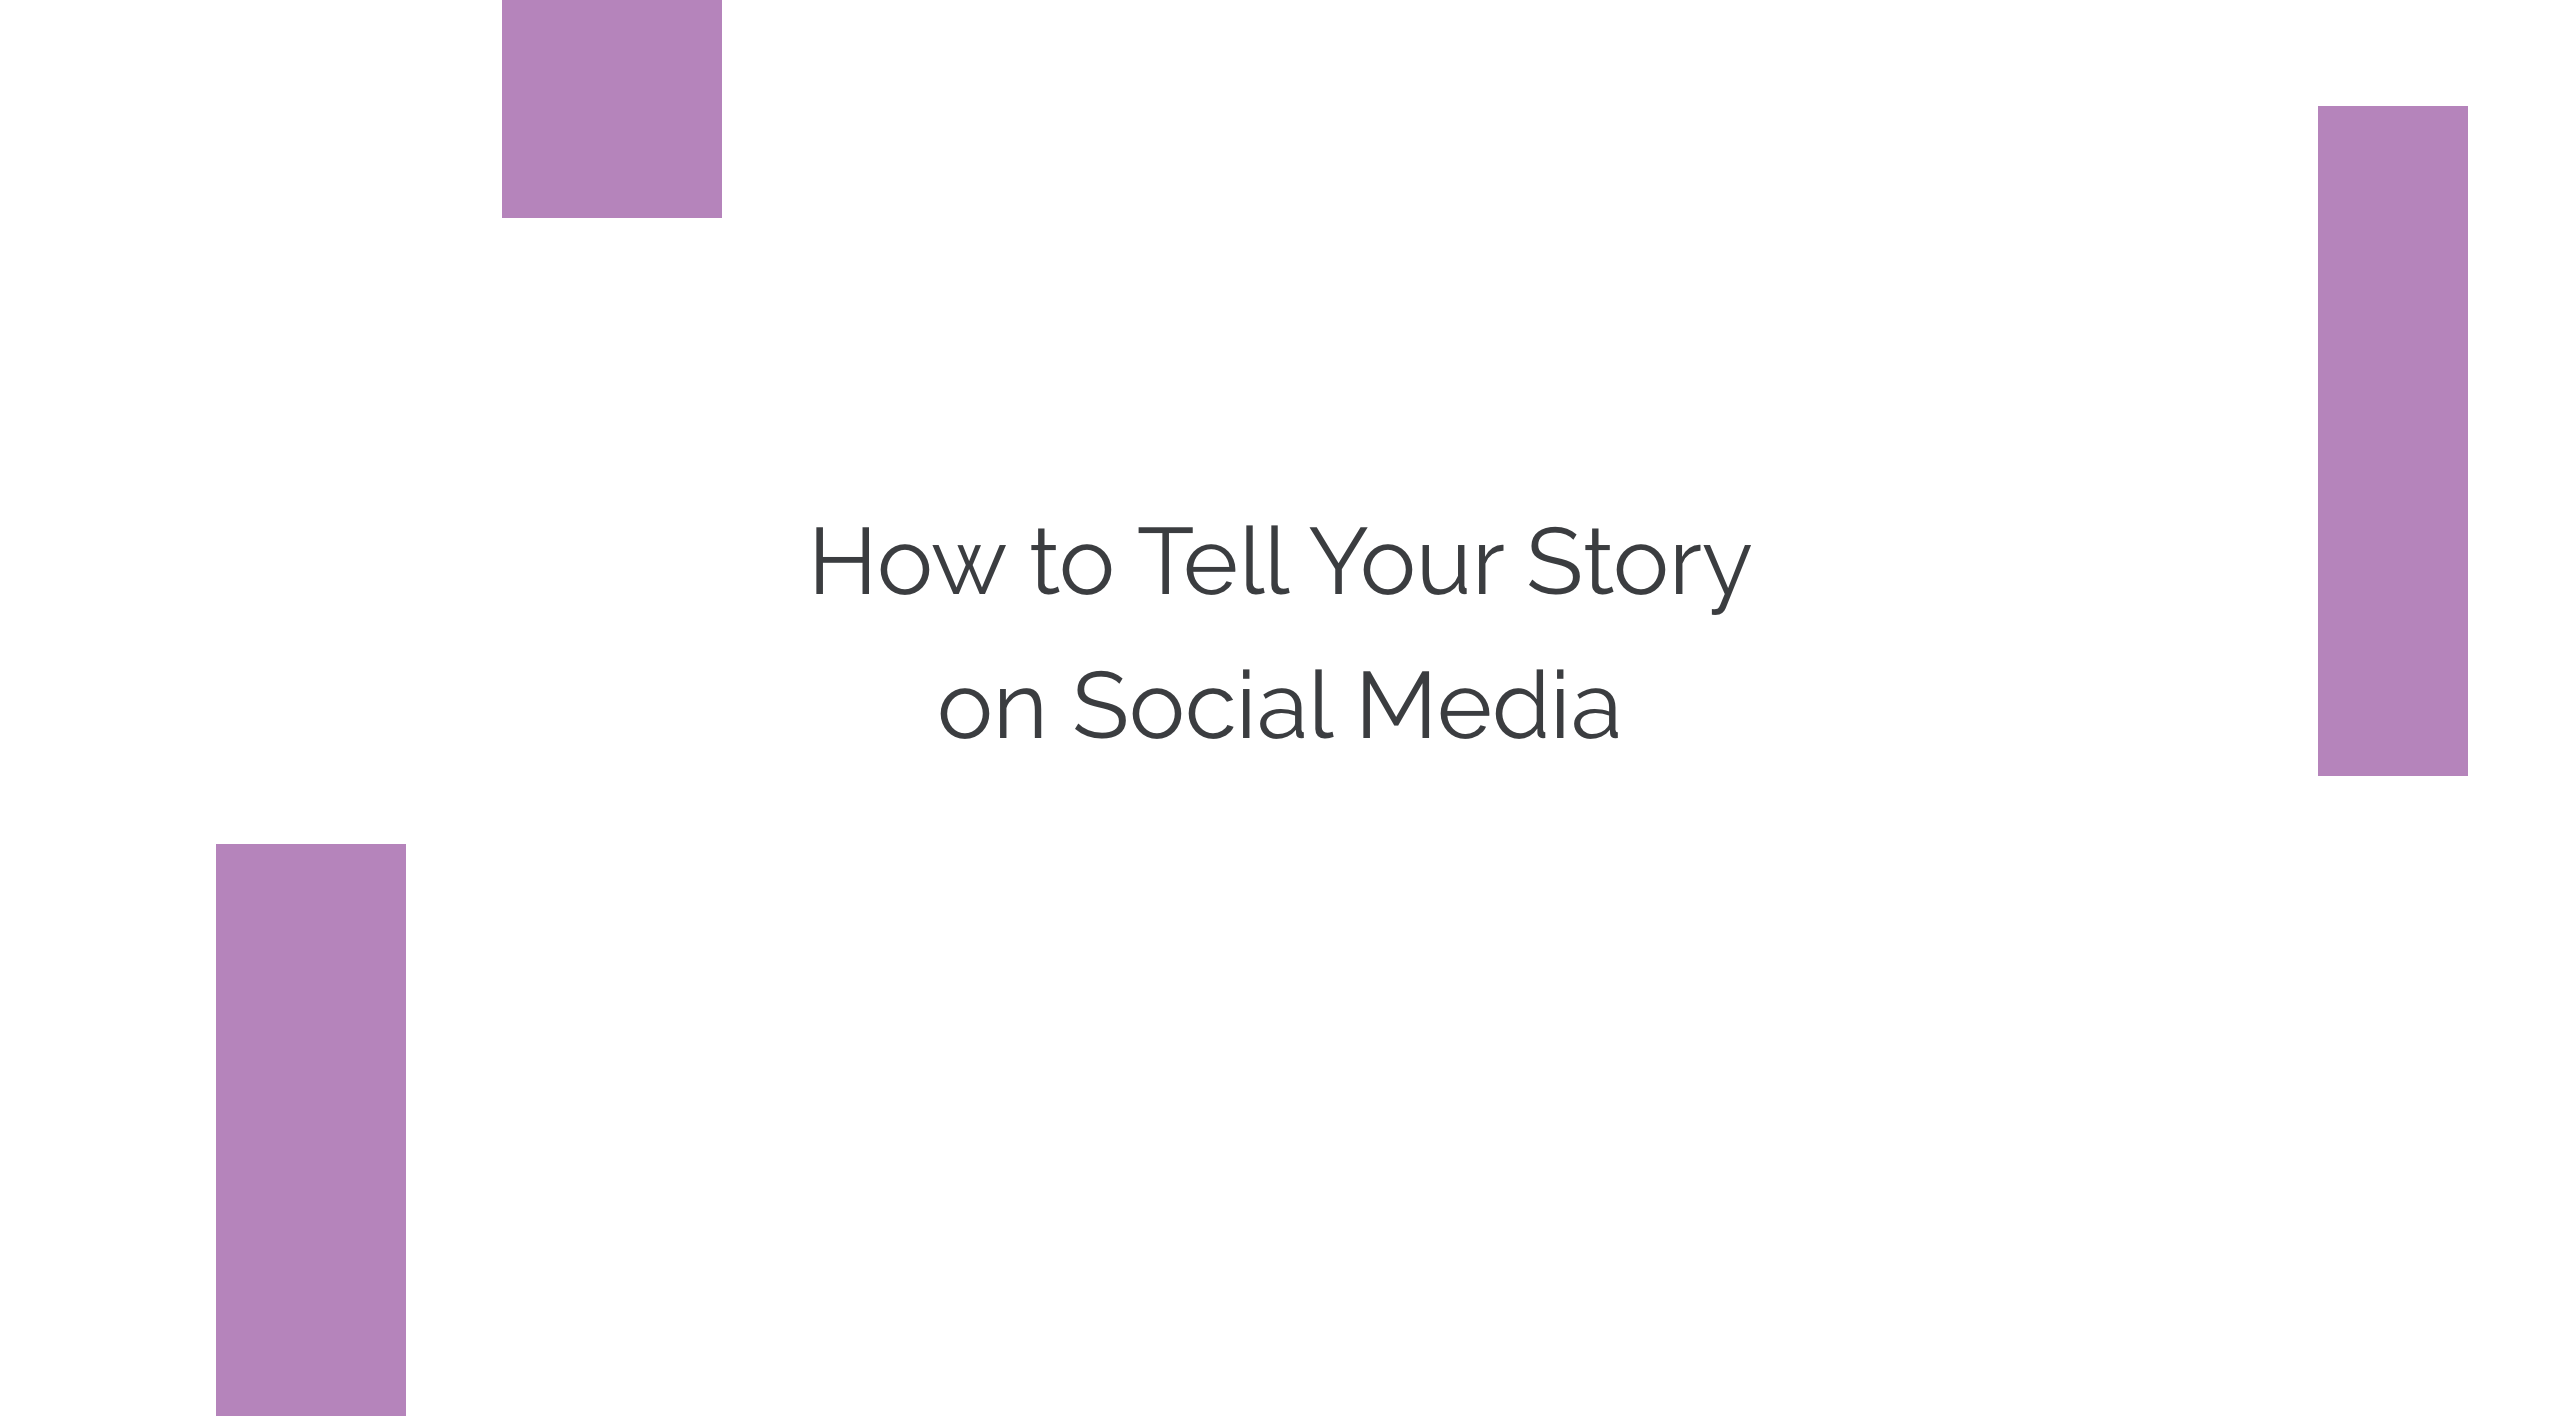 How to Tell Your Story on Social Media